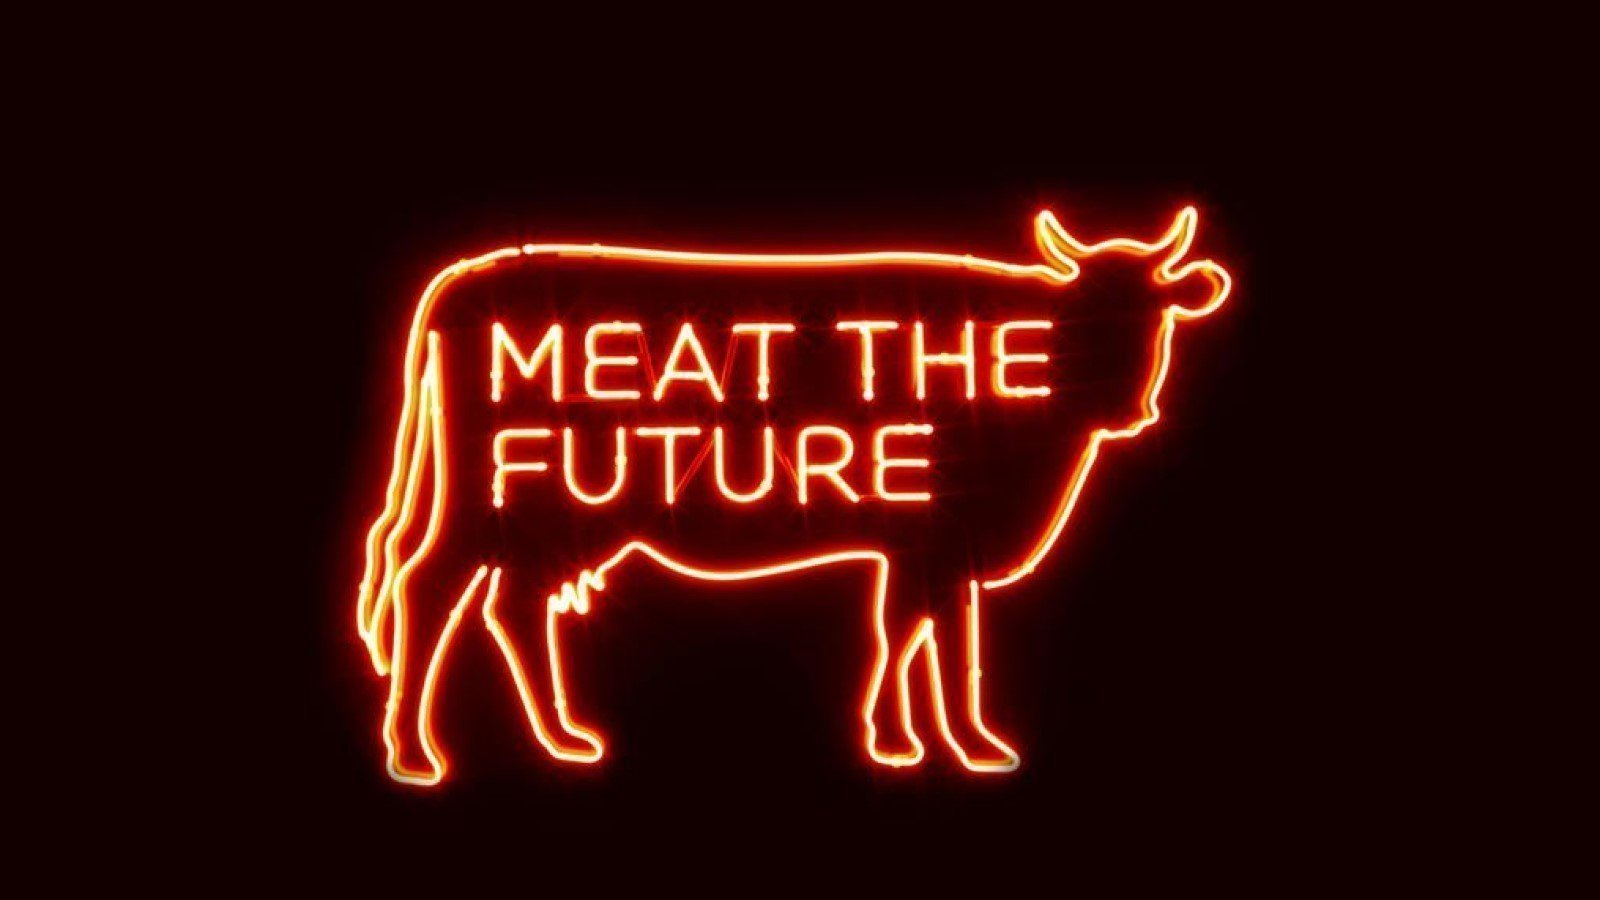 Meat The Future Exhibition at the Oxford University Museum of Natural History